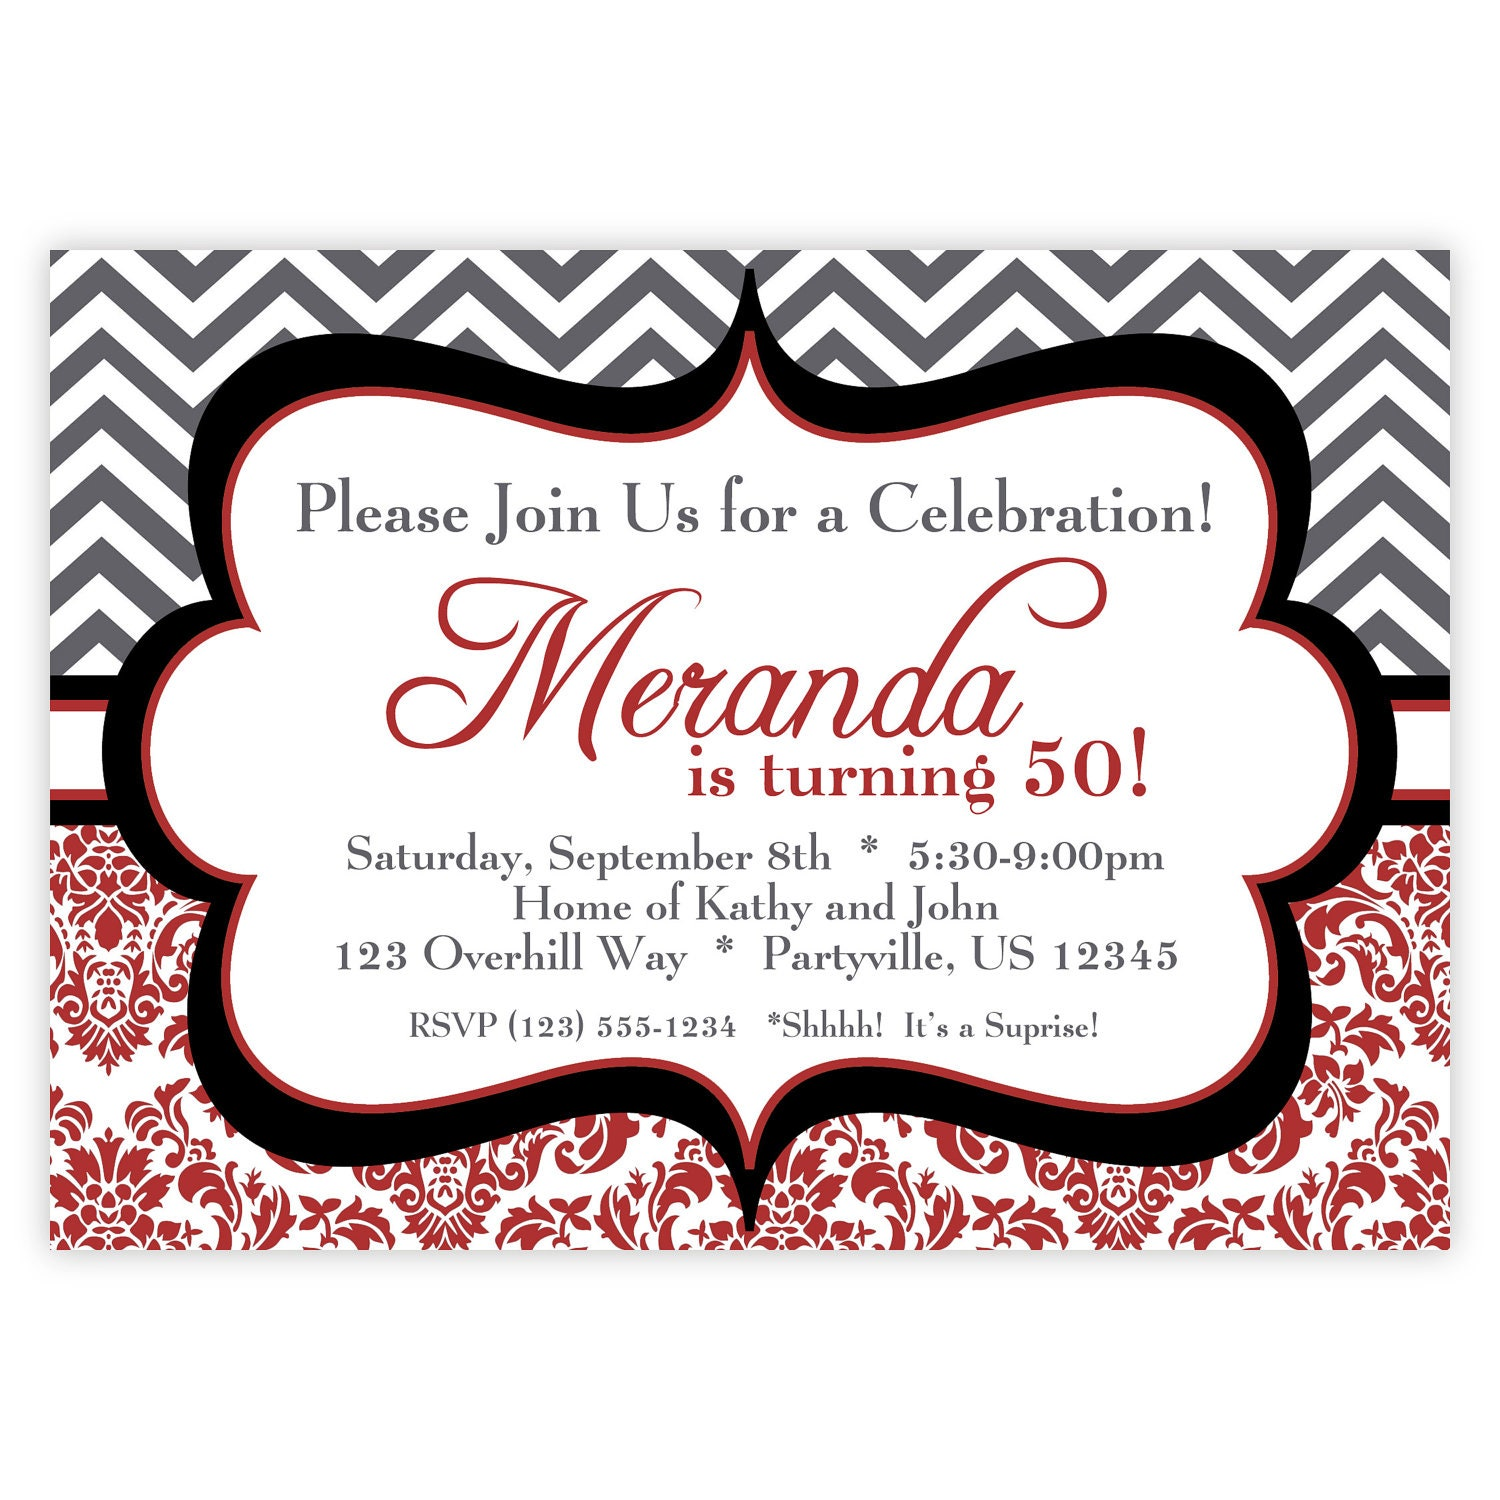 Chevron Invitation Black White and Dark Red Chevron Zig Zag